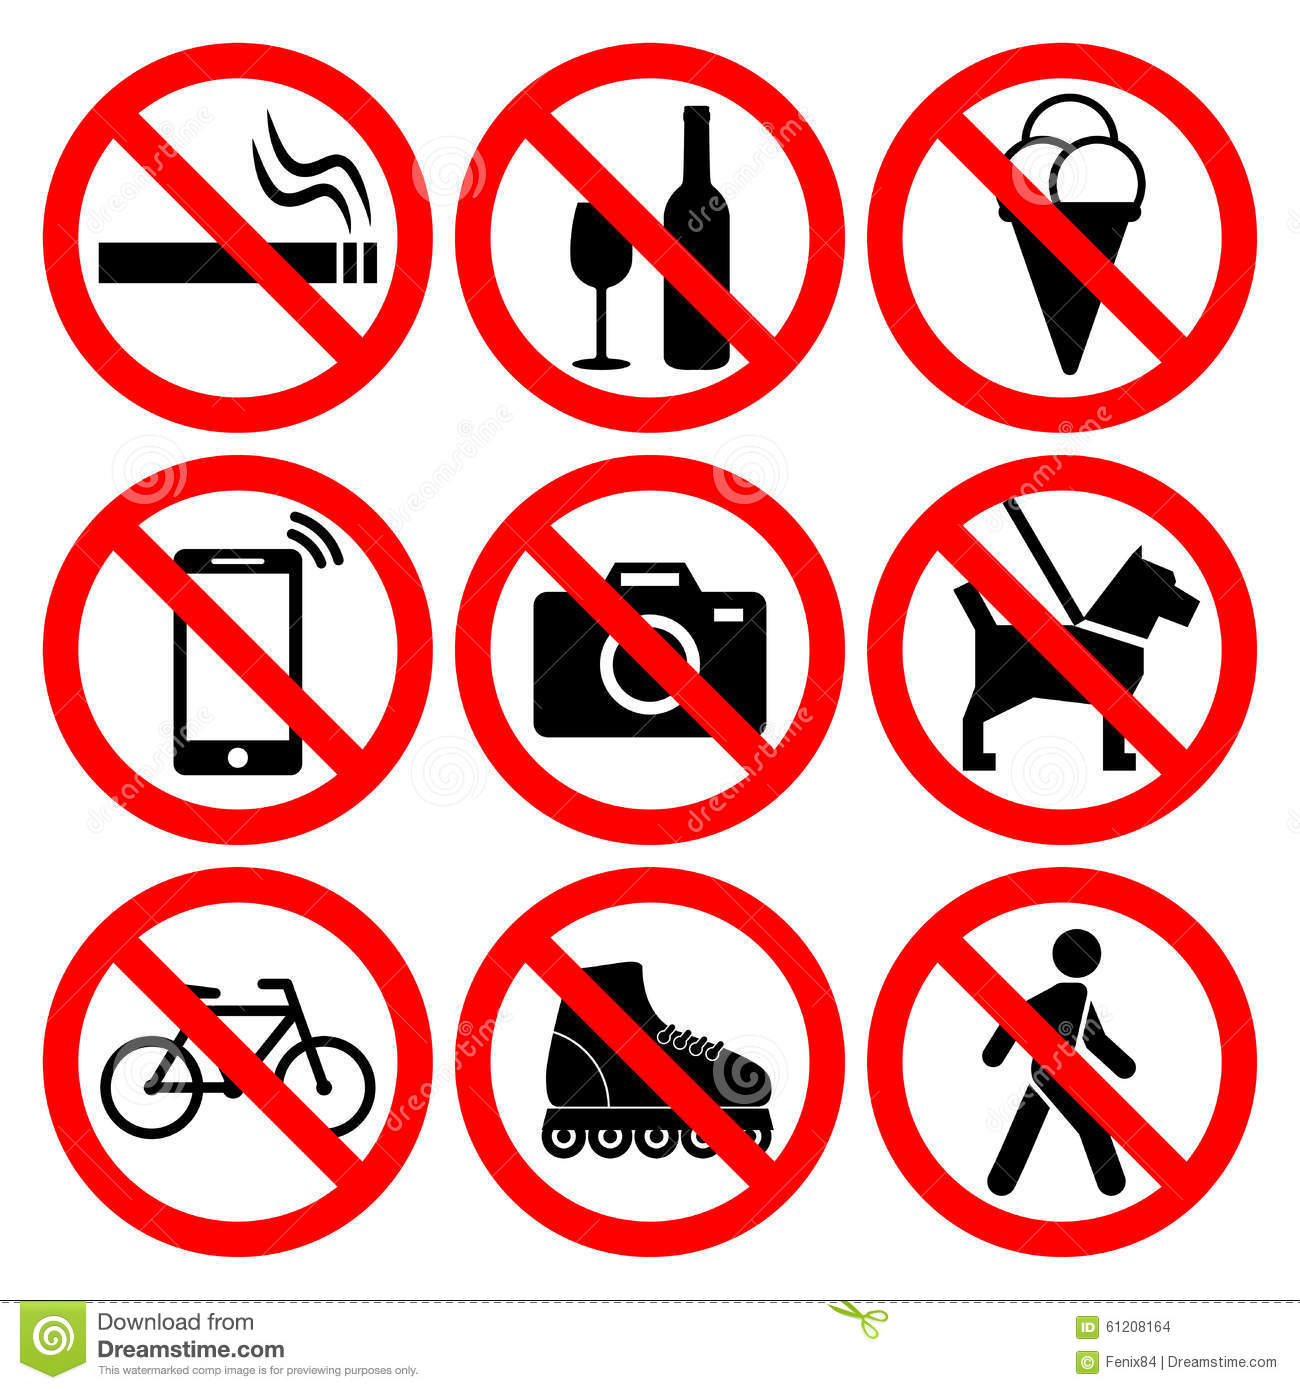 Prohibition symbols set stock vector illustration of forbid 61208164 prohibition symbols set biocorpaavc Image collections